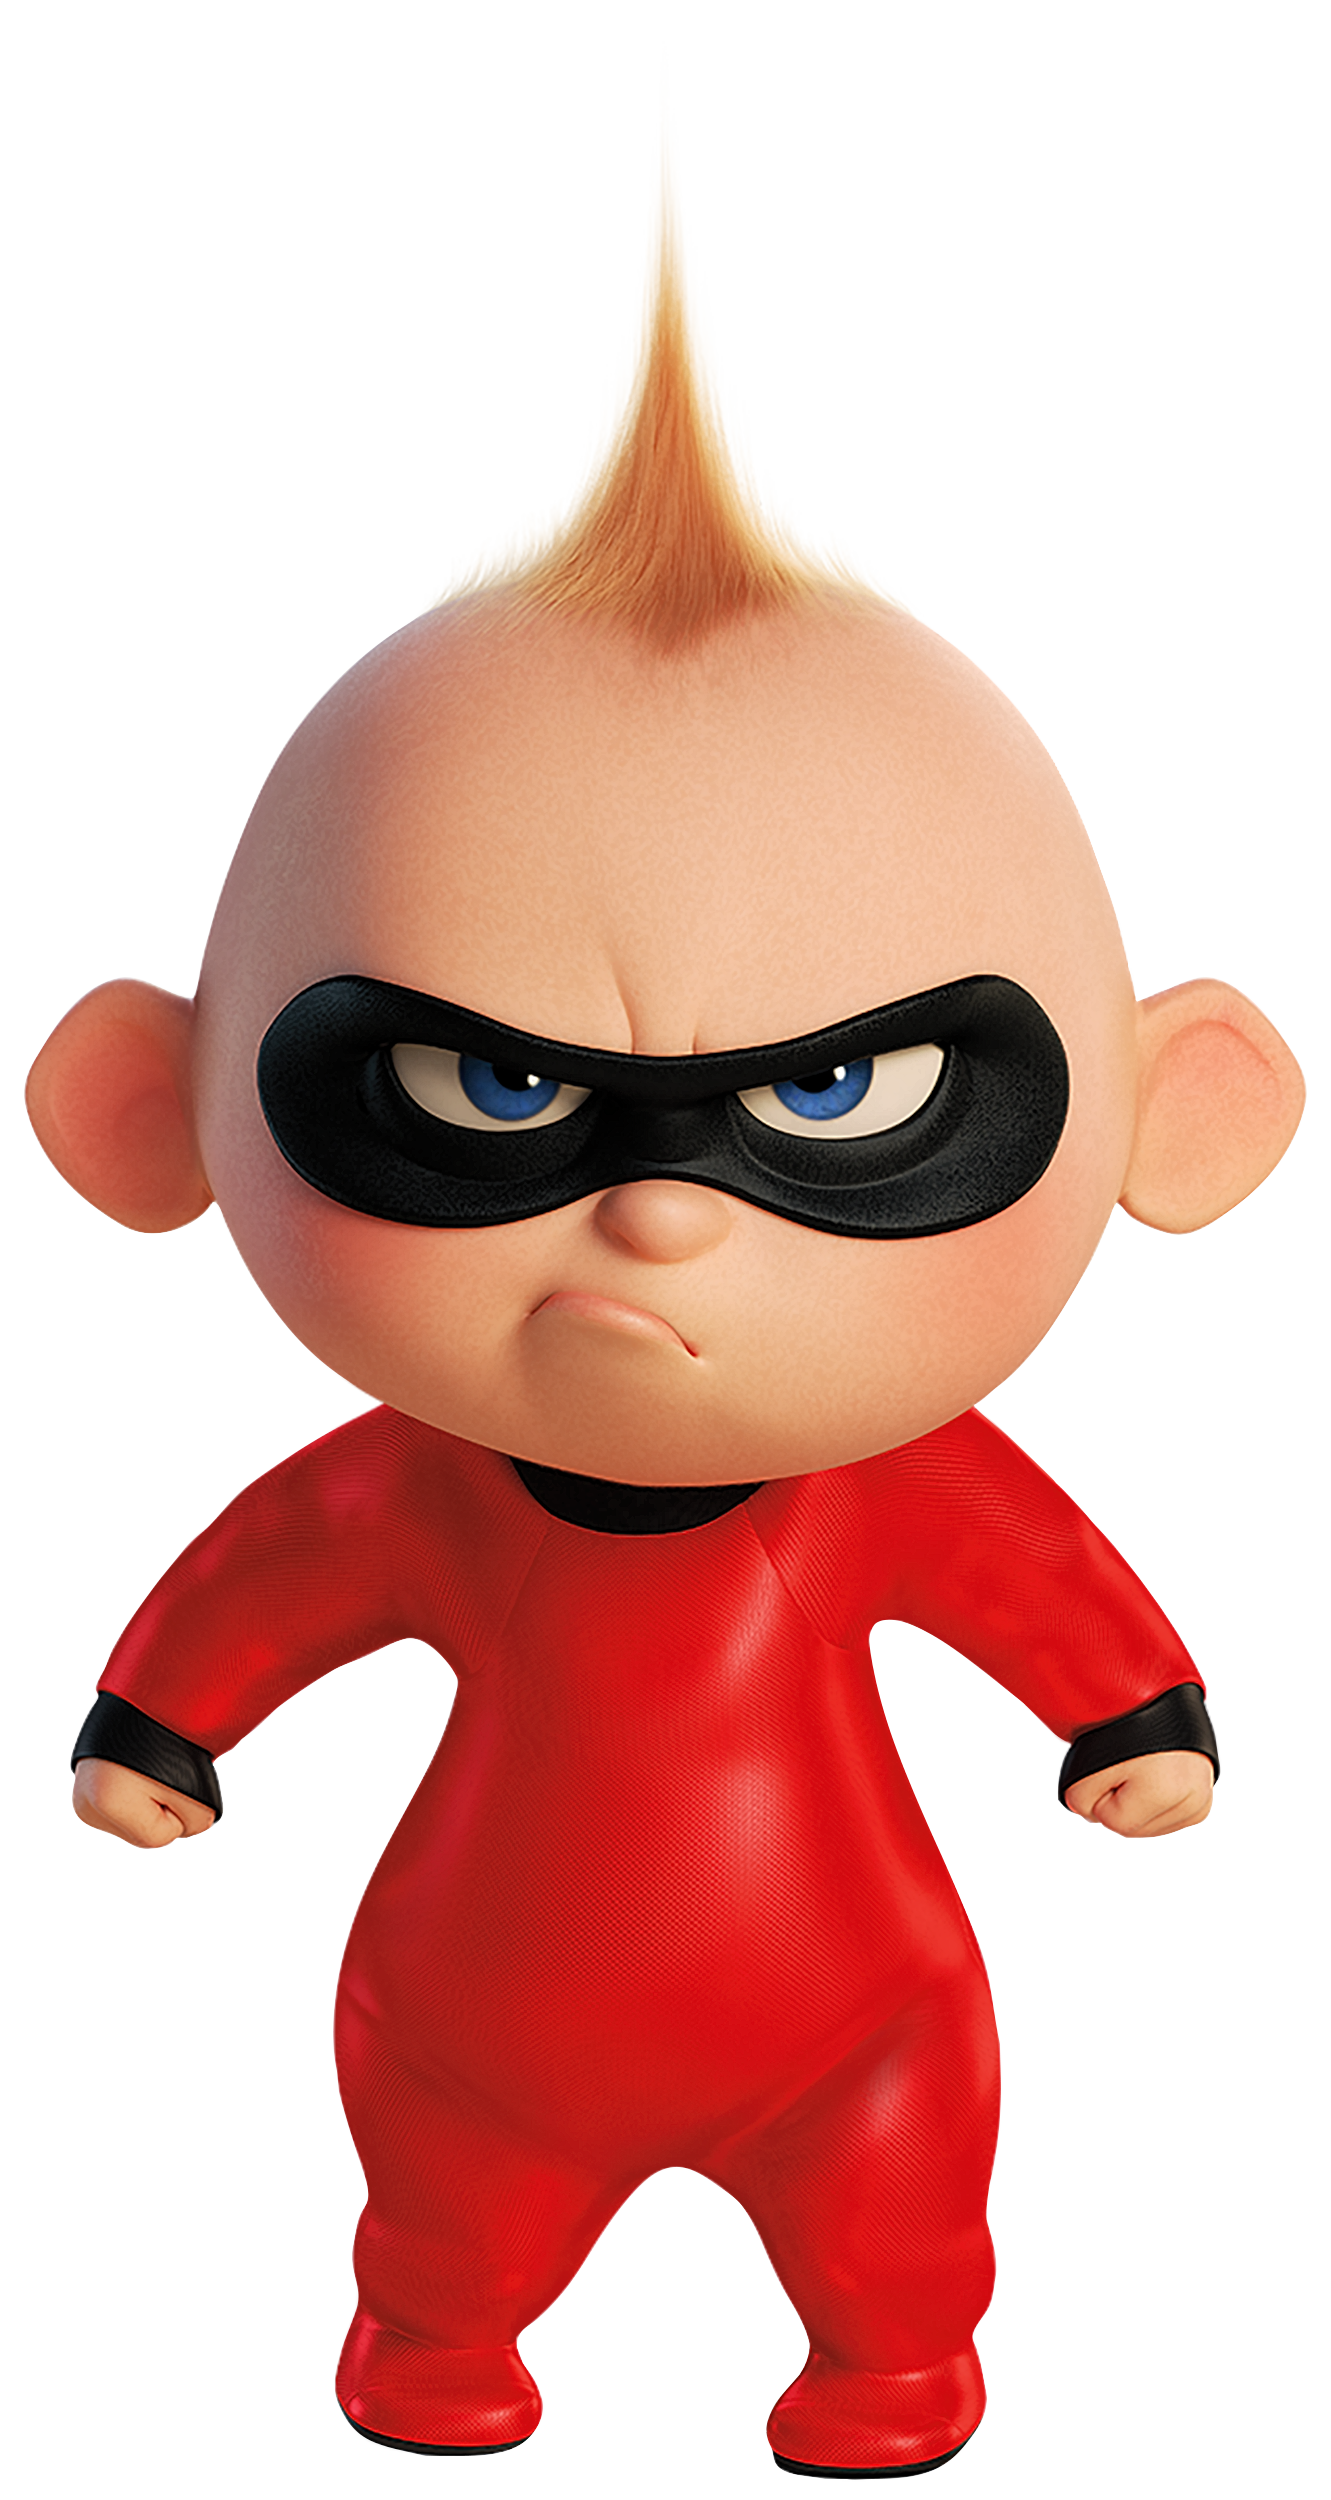 Google Image Result For Https Papermilkdesign Com Images Banner Clipart Inc Los Increibles Personajes Imagenes De Los Increibles Imagenes De Dibujos Animados